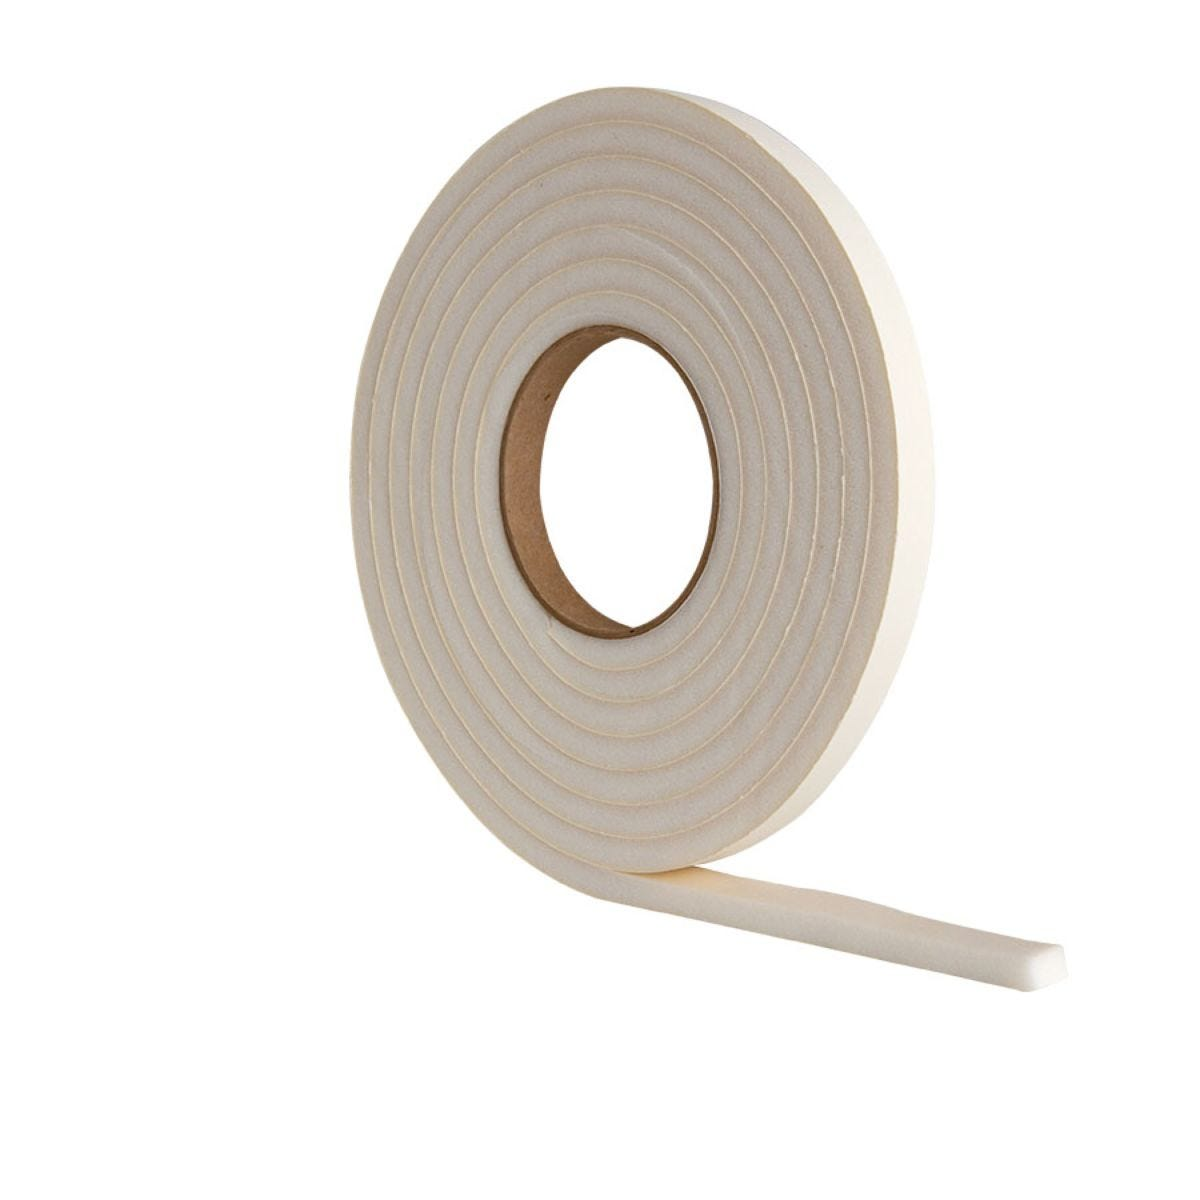 Stormguard Extra-Thick White Rubber Weather Seal - 3.5m